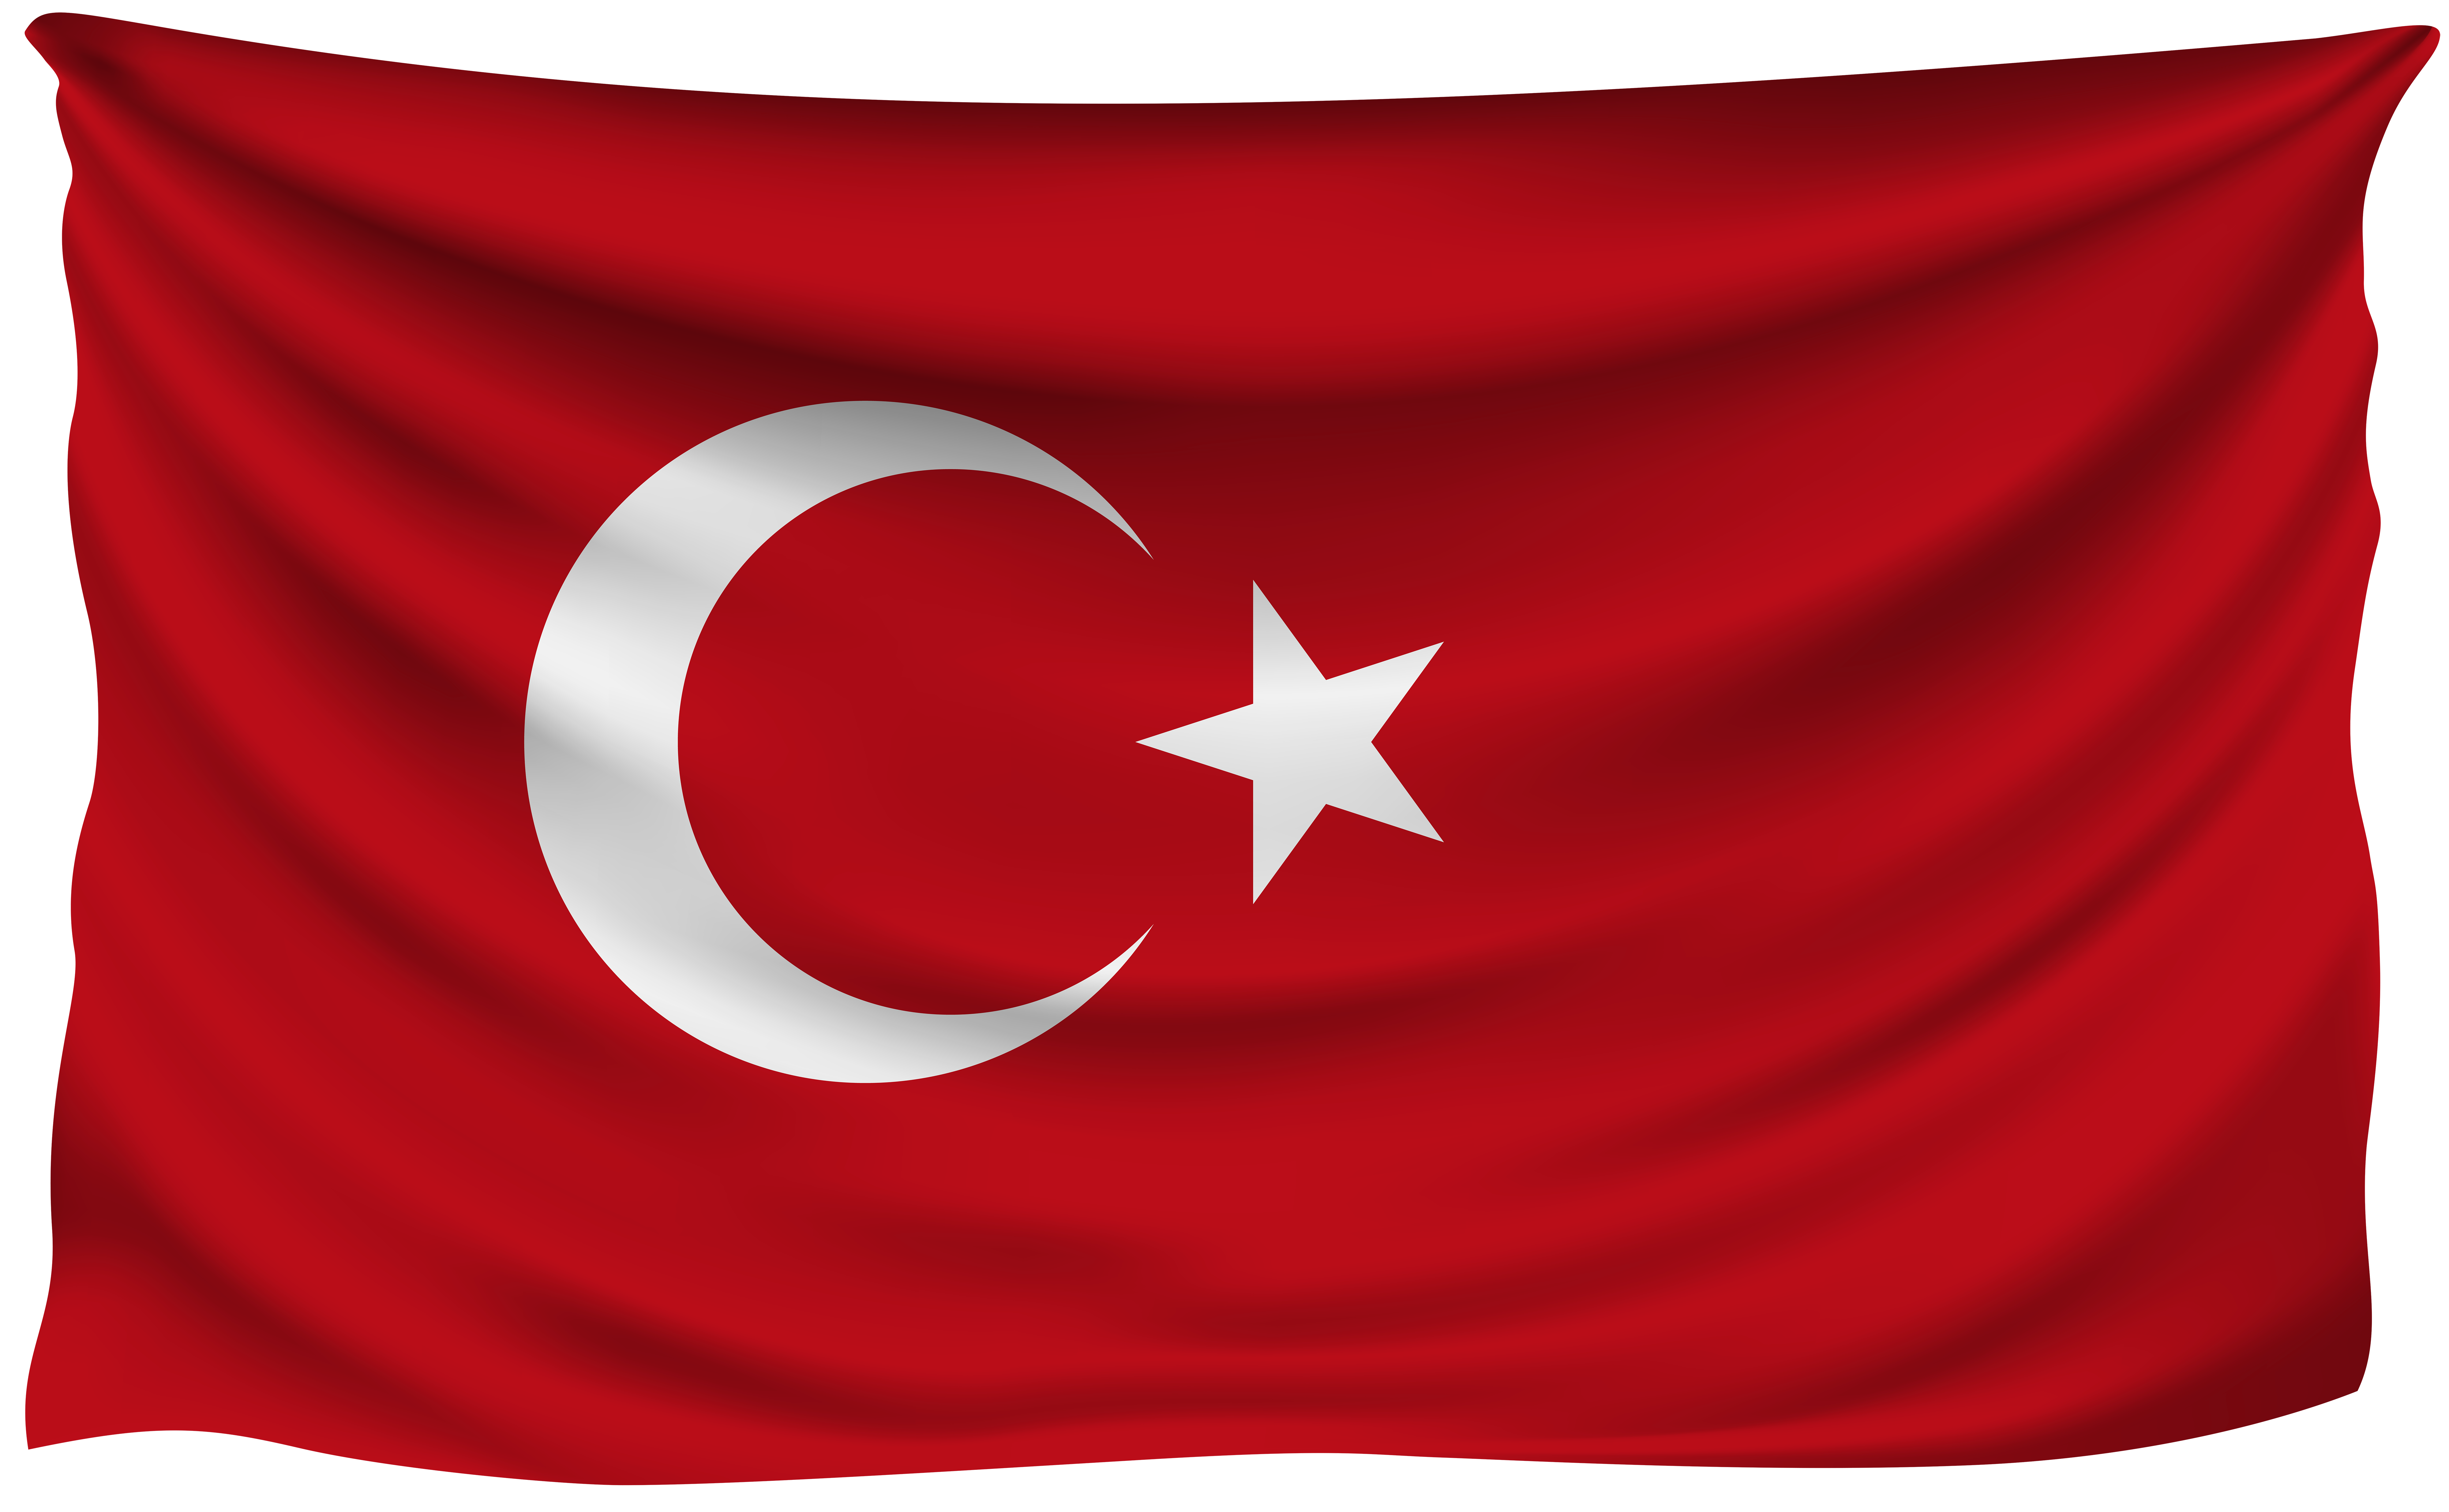 Turkey Wrinkled Flag | Gallery Yopriceville - High-Quality Images ... banner freeuse stock